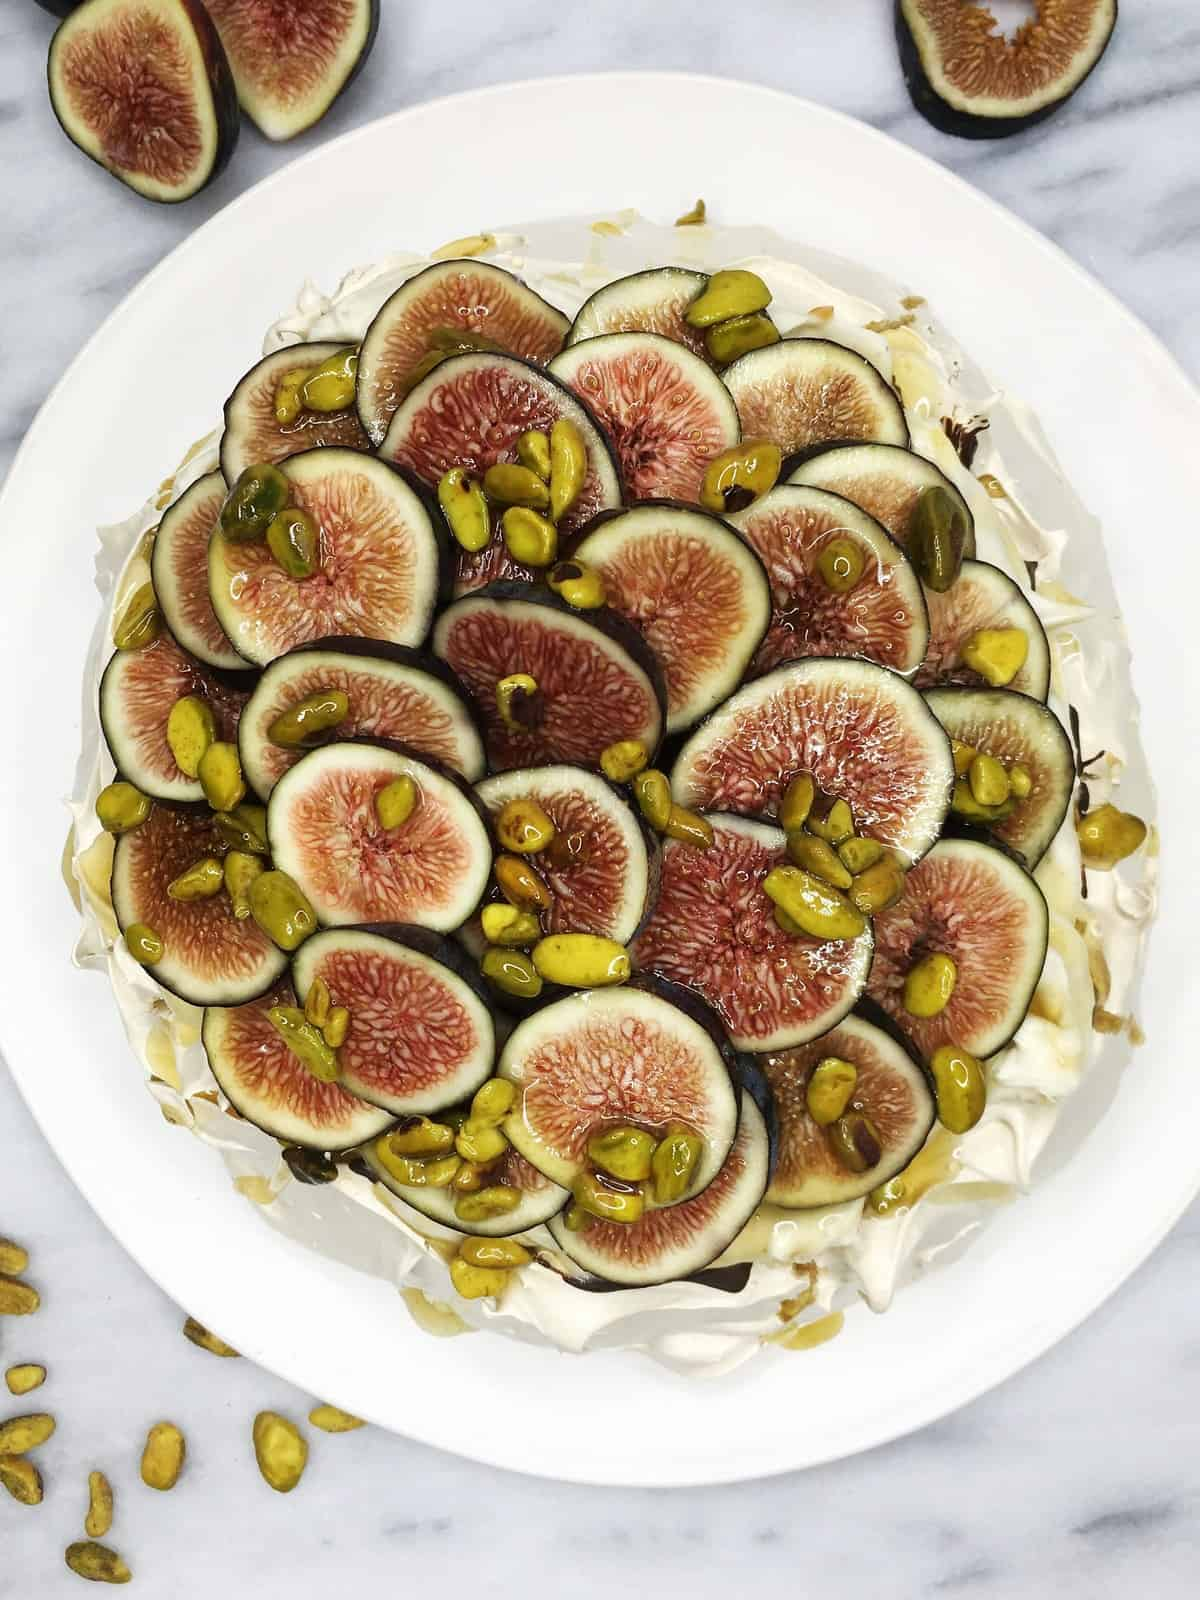 Decorated Pavlova cake on a white plate with figs and pistachios on a marble board: Overhead view